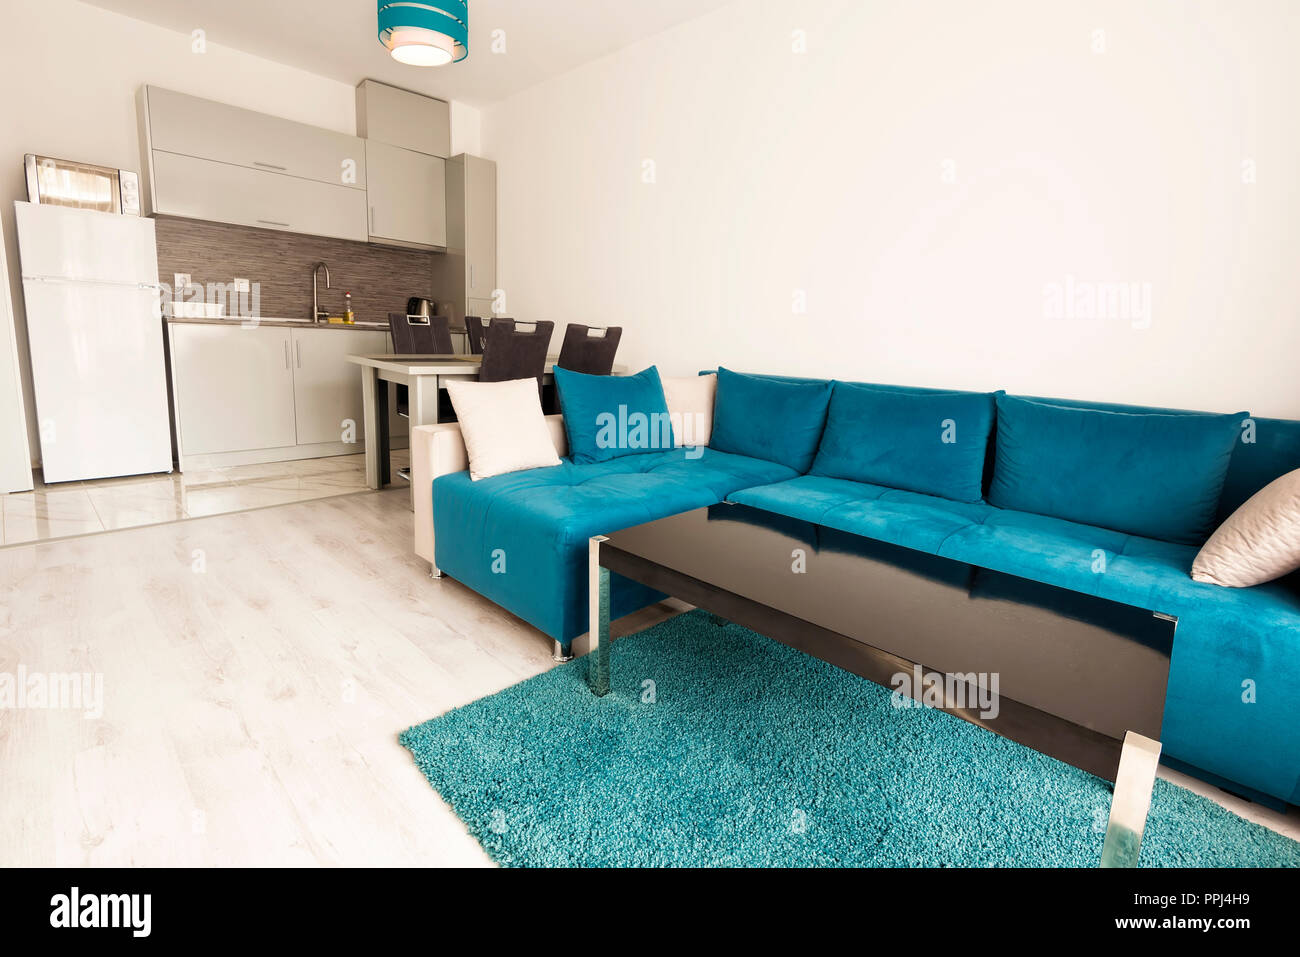 living room furniture for studio apartments the best colors modern bright and cozy interior design with sofa dining table kitchen grey turquoise blue apartment